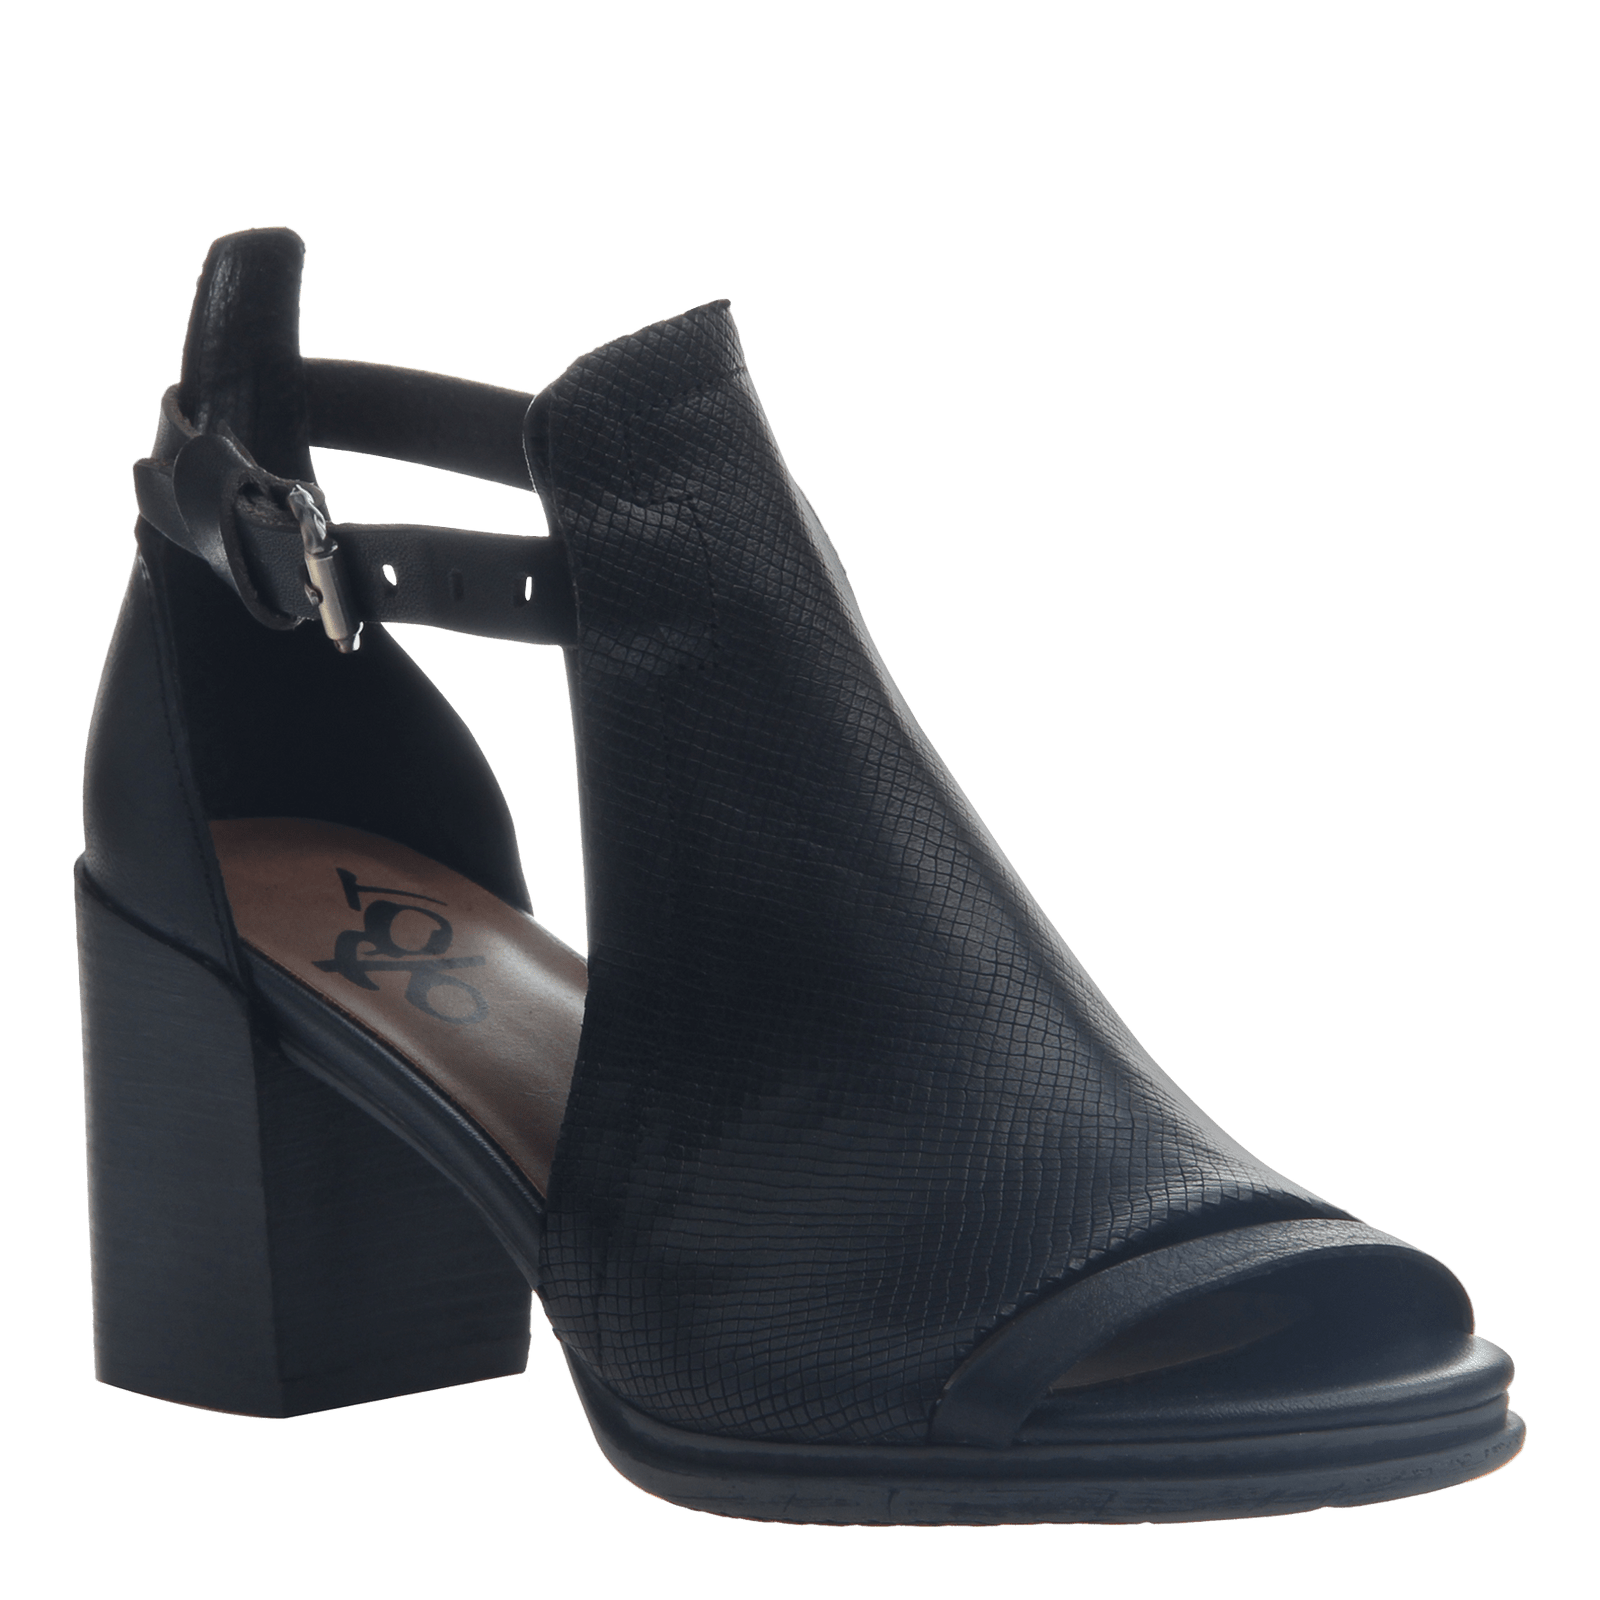 Shoes on Sale | Wedges, Boots, Sneakers